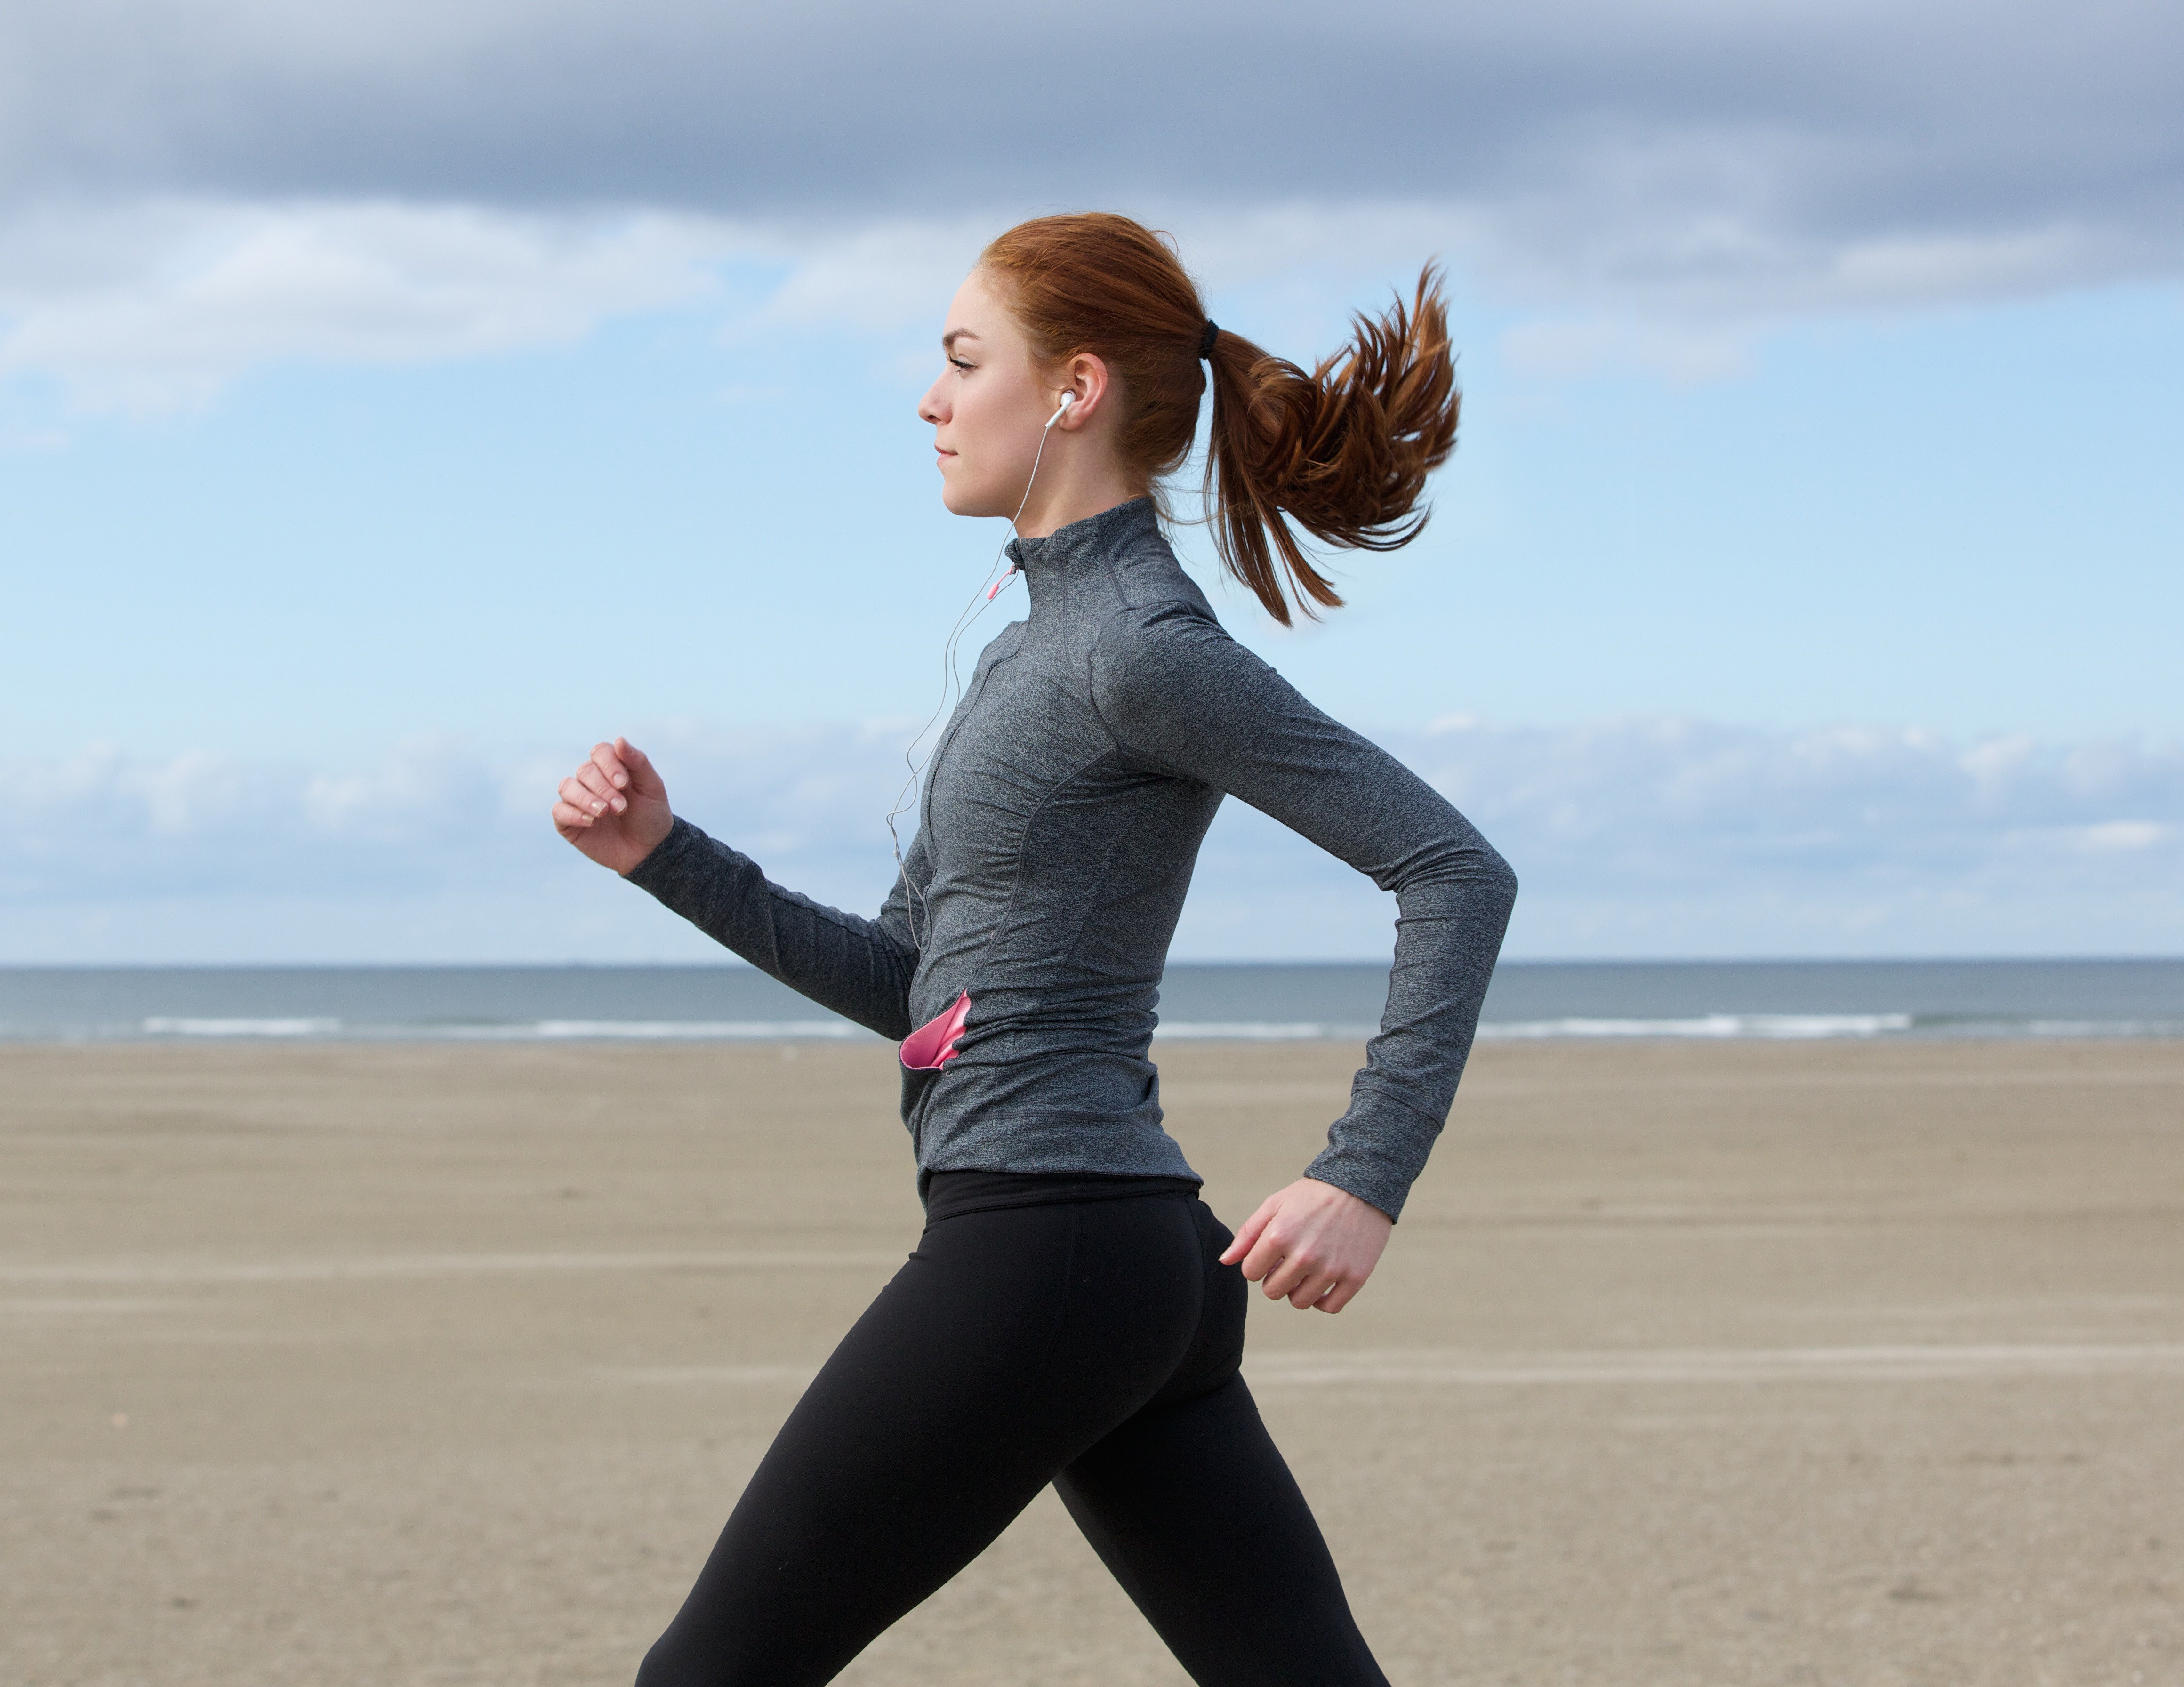 How Many Calories are Burned Speed Walking for Two Hours?